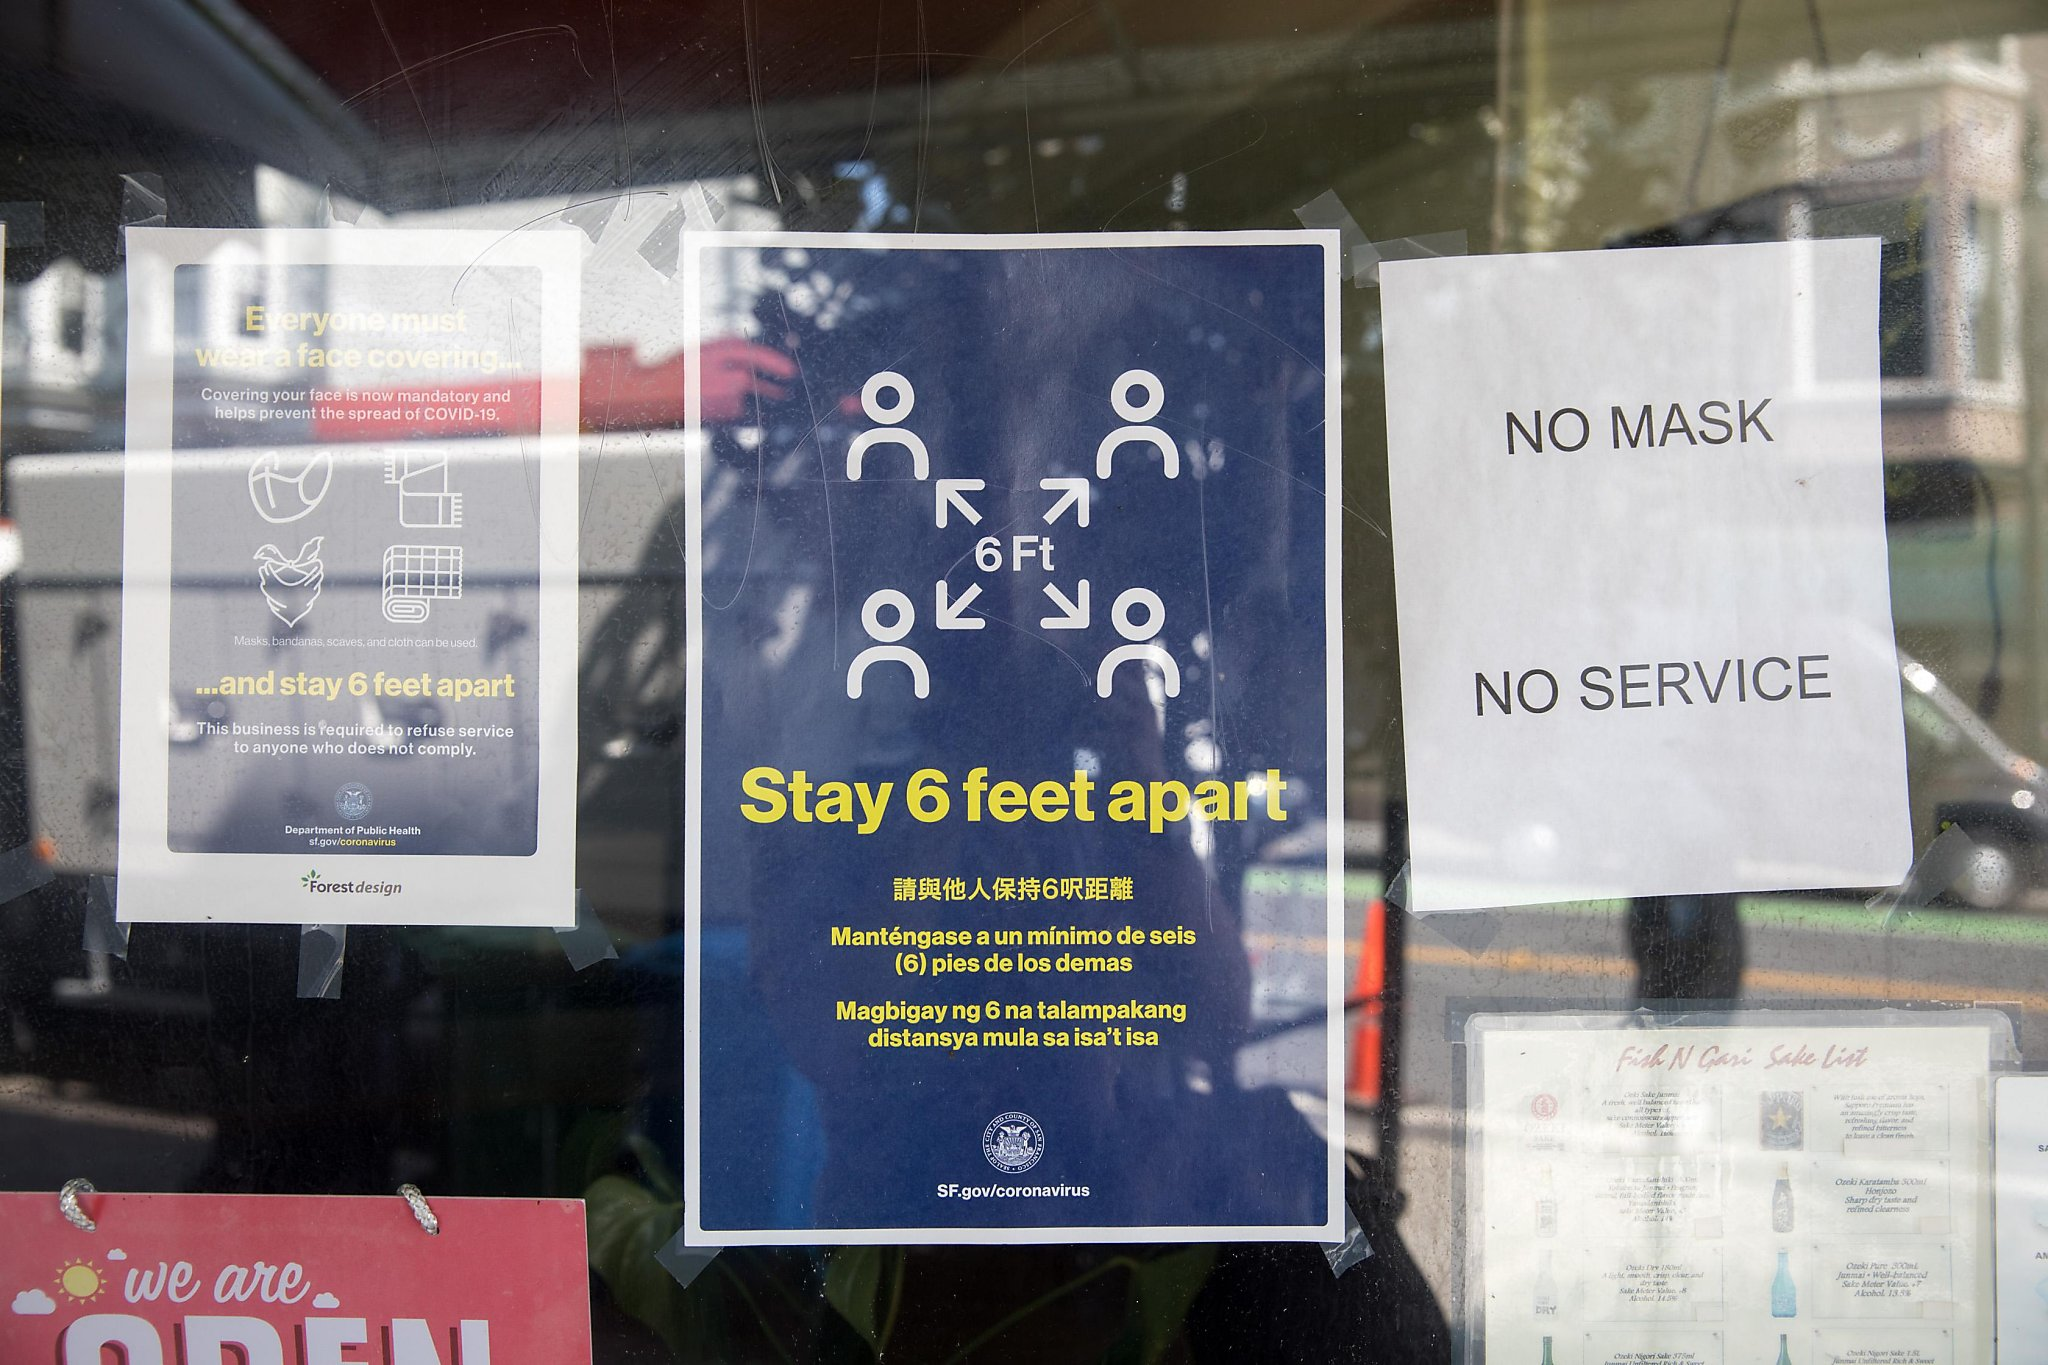 We're All Health Inspectors Now: Restaurant Complaints Fueling Inspections For Covid-19 Compliance photo